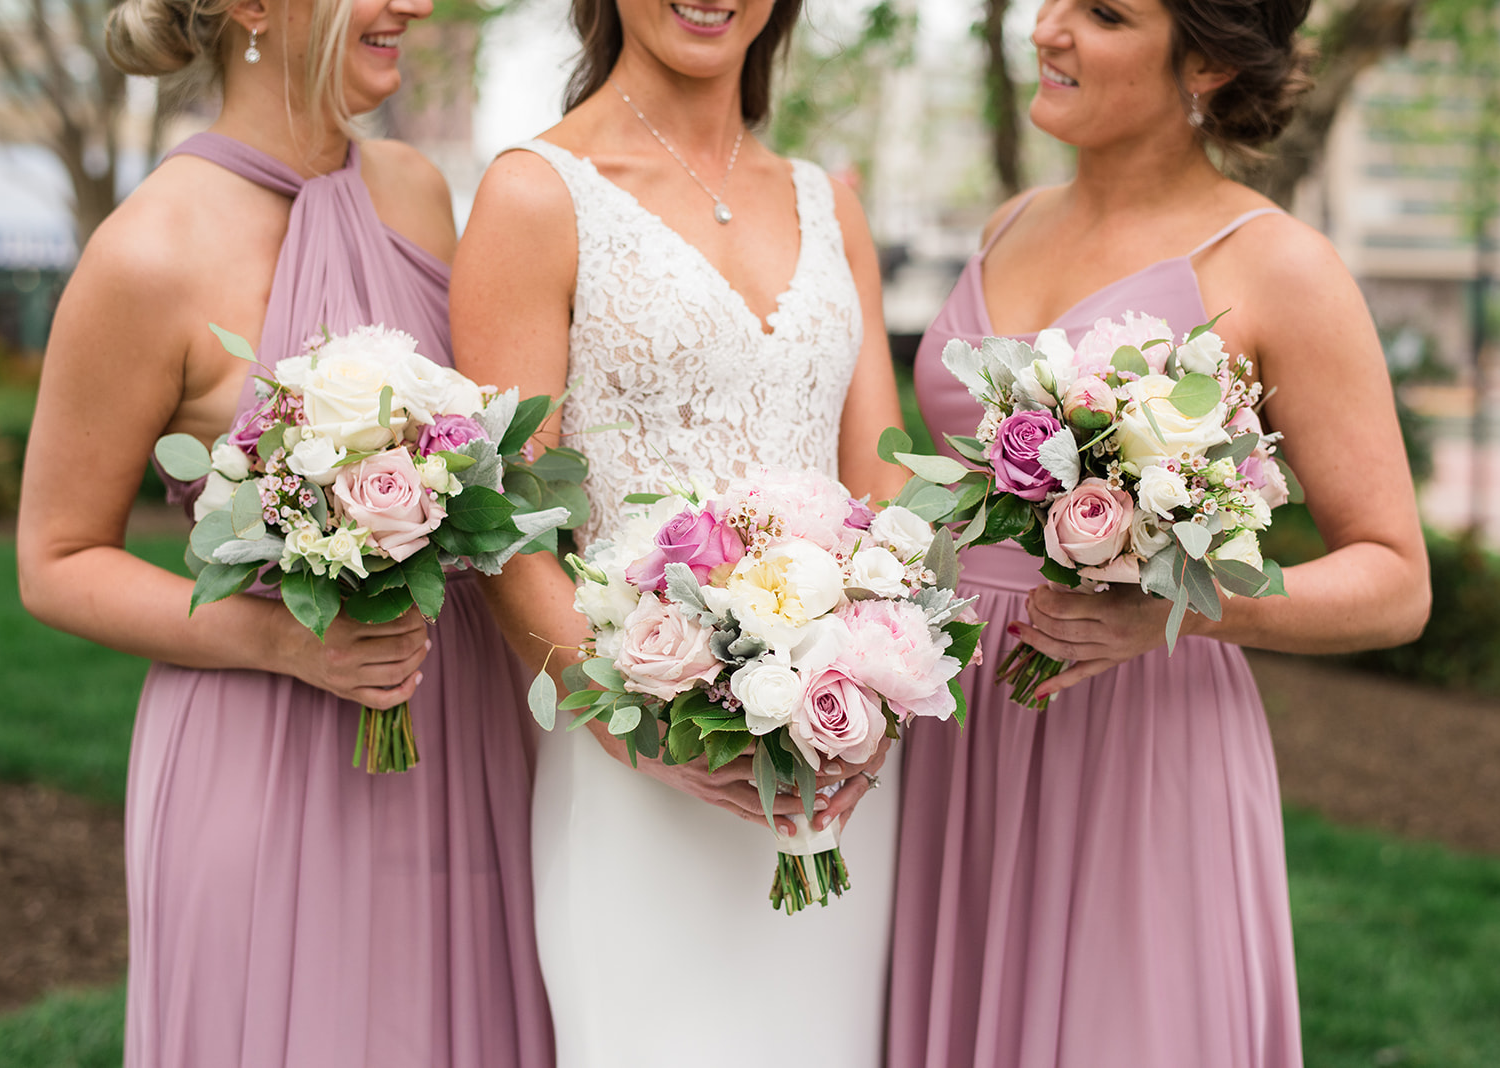 a close up shot of the bride and bridesmaids wedding day bouquets